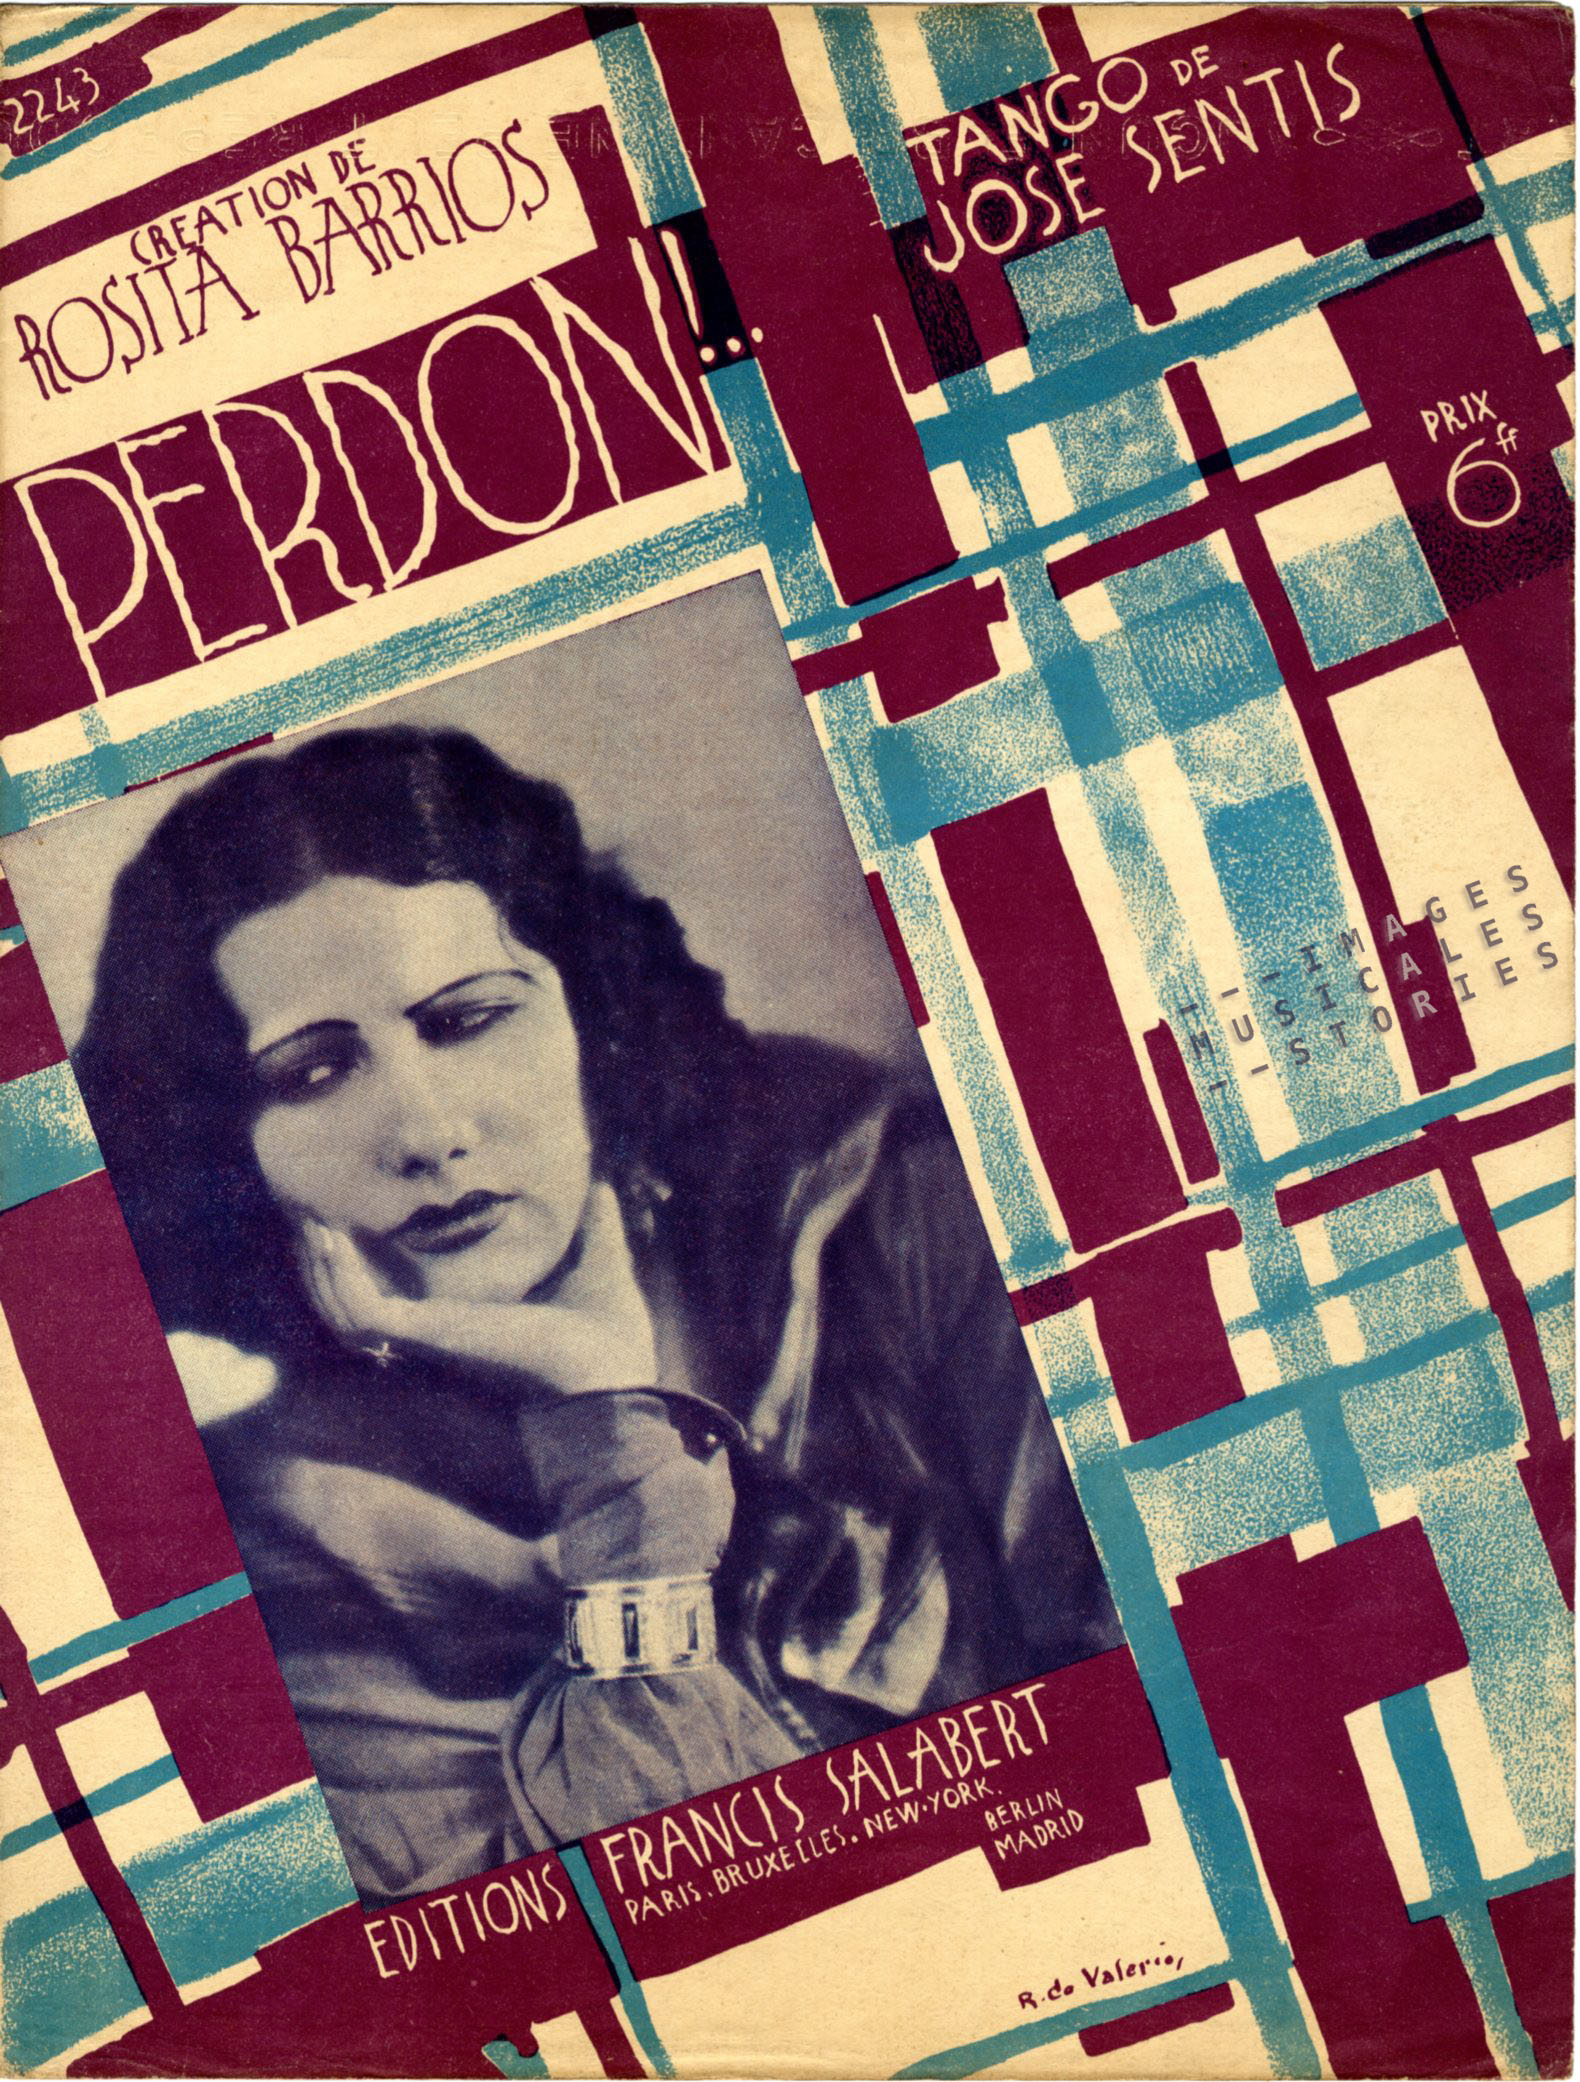 Sheet music 'Perdon!' illustrated by Roger de Valerio., 1929.